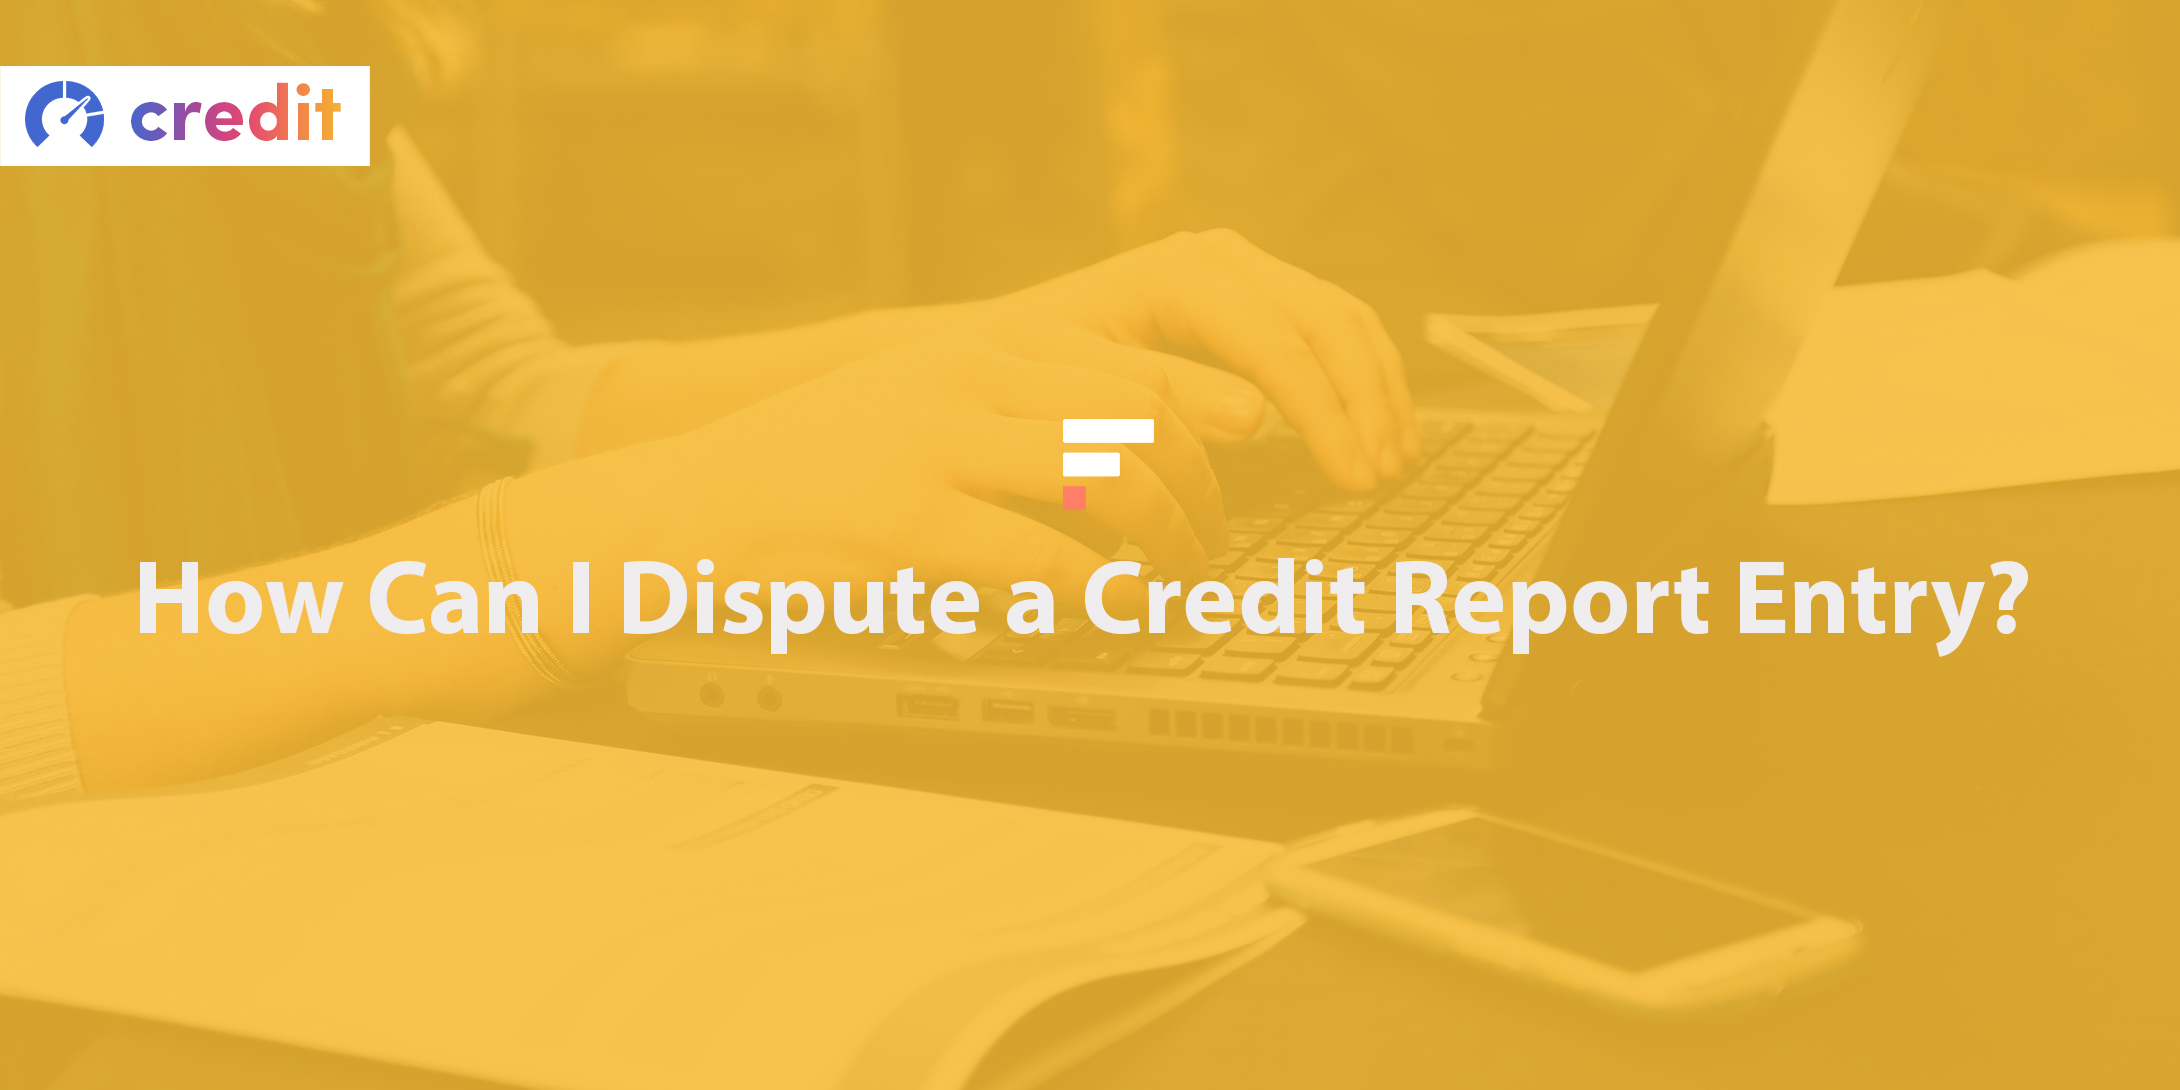 How can I dispute a credit report entry